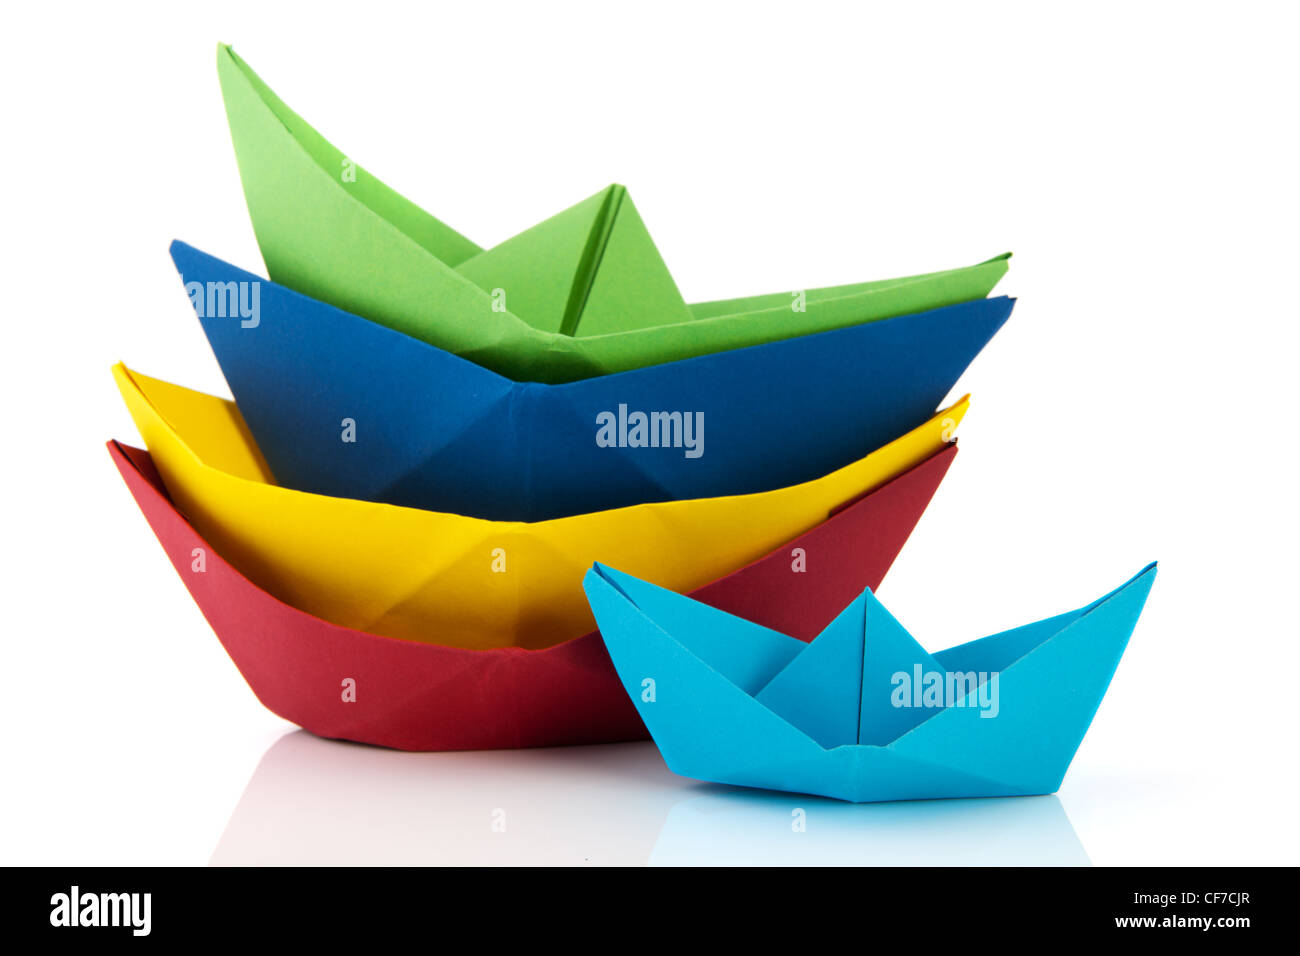 Stacked Colorful Folded Paper Boats Isolated Over White Background